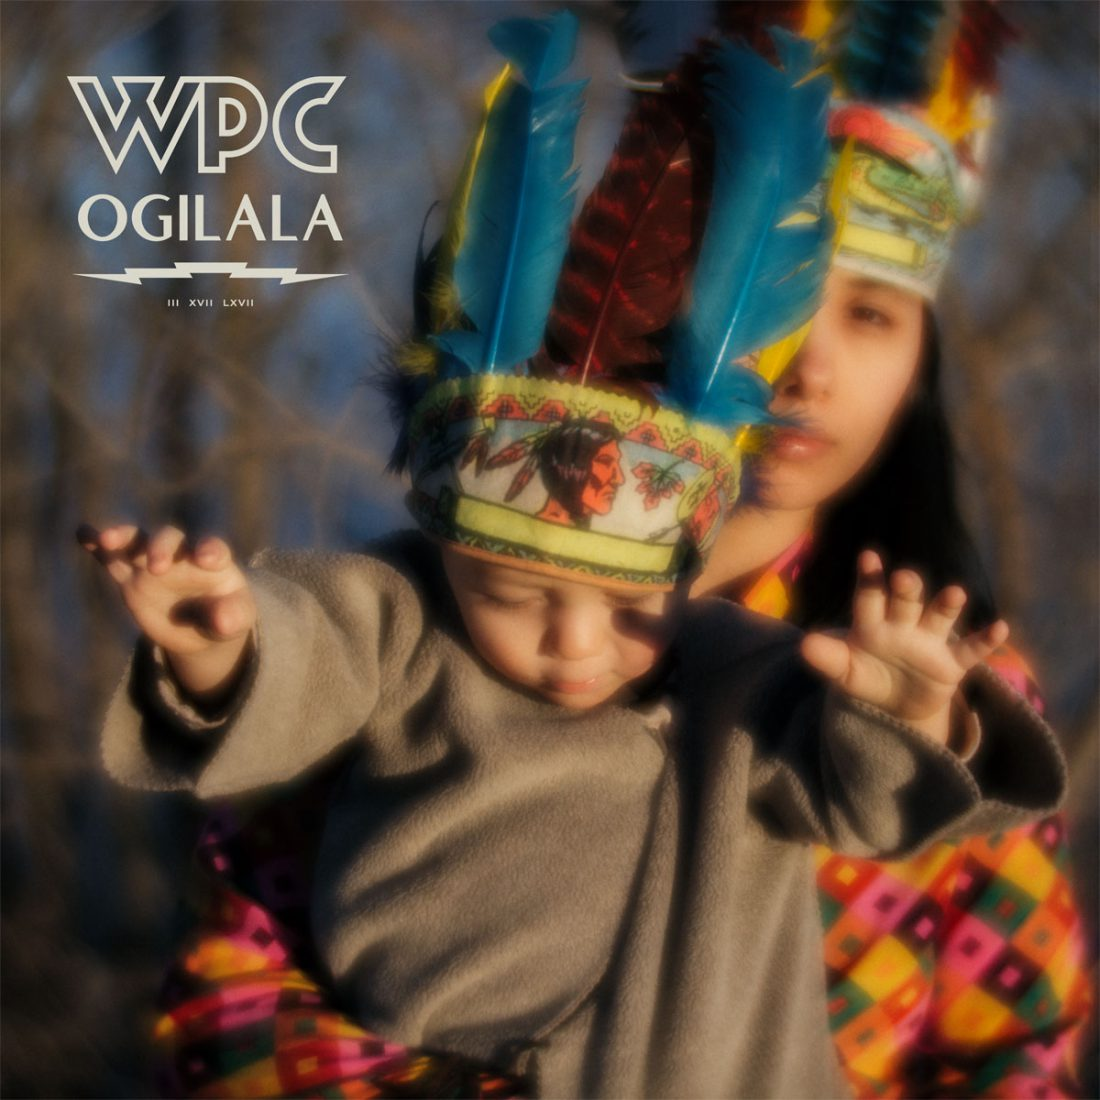 wpc ogilala Billy Corgan unveils new solo album, Ogilala: Stream